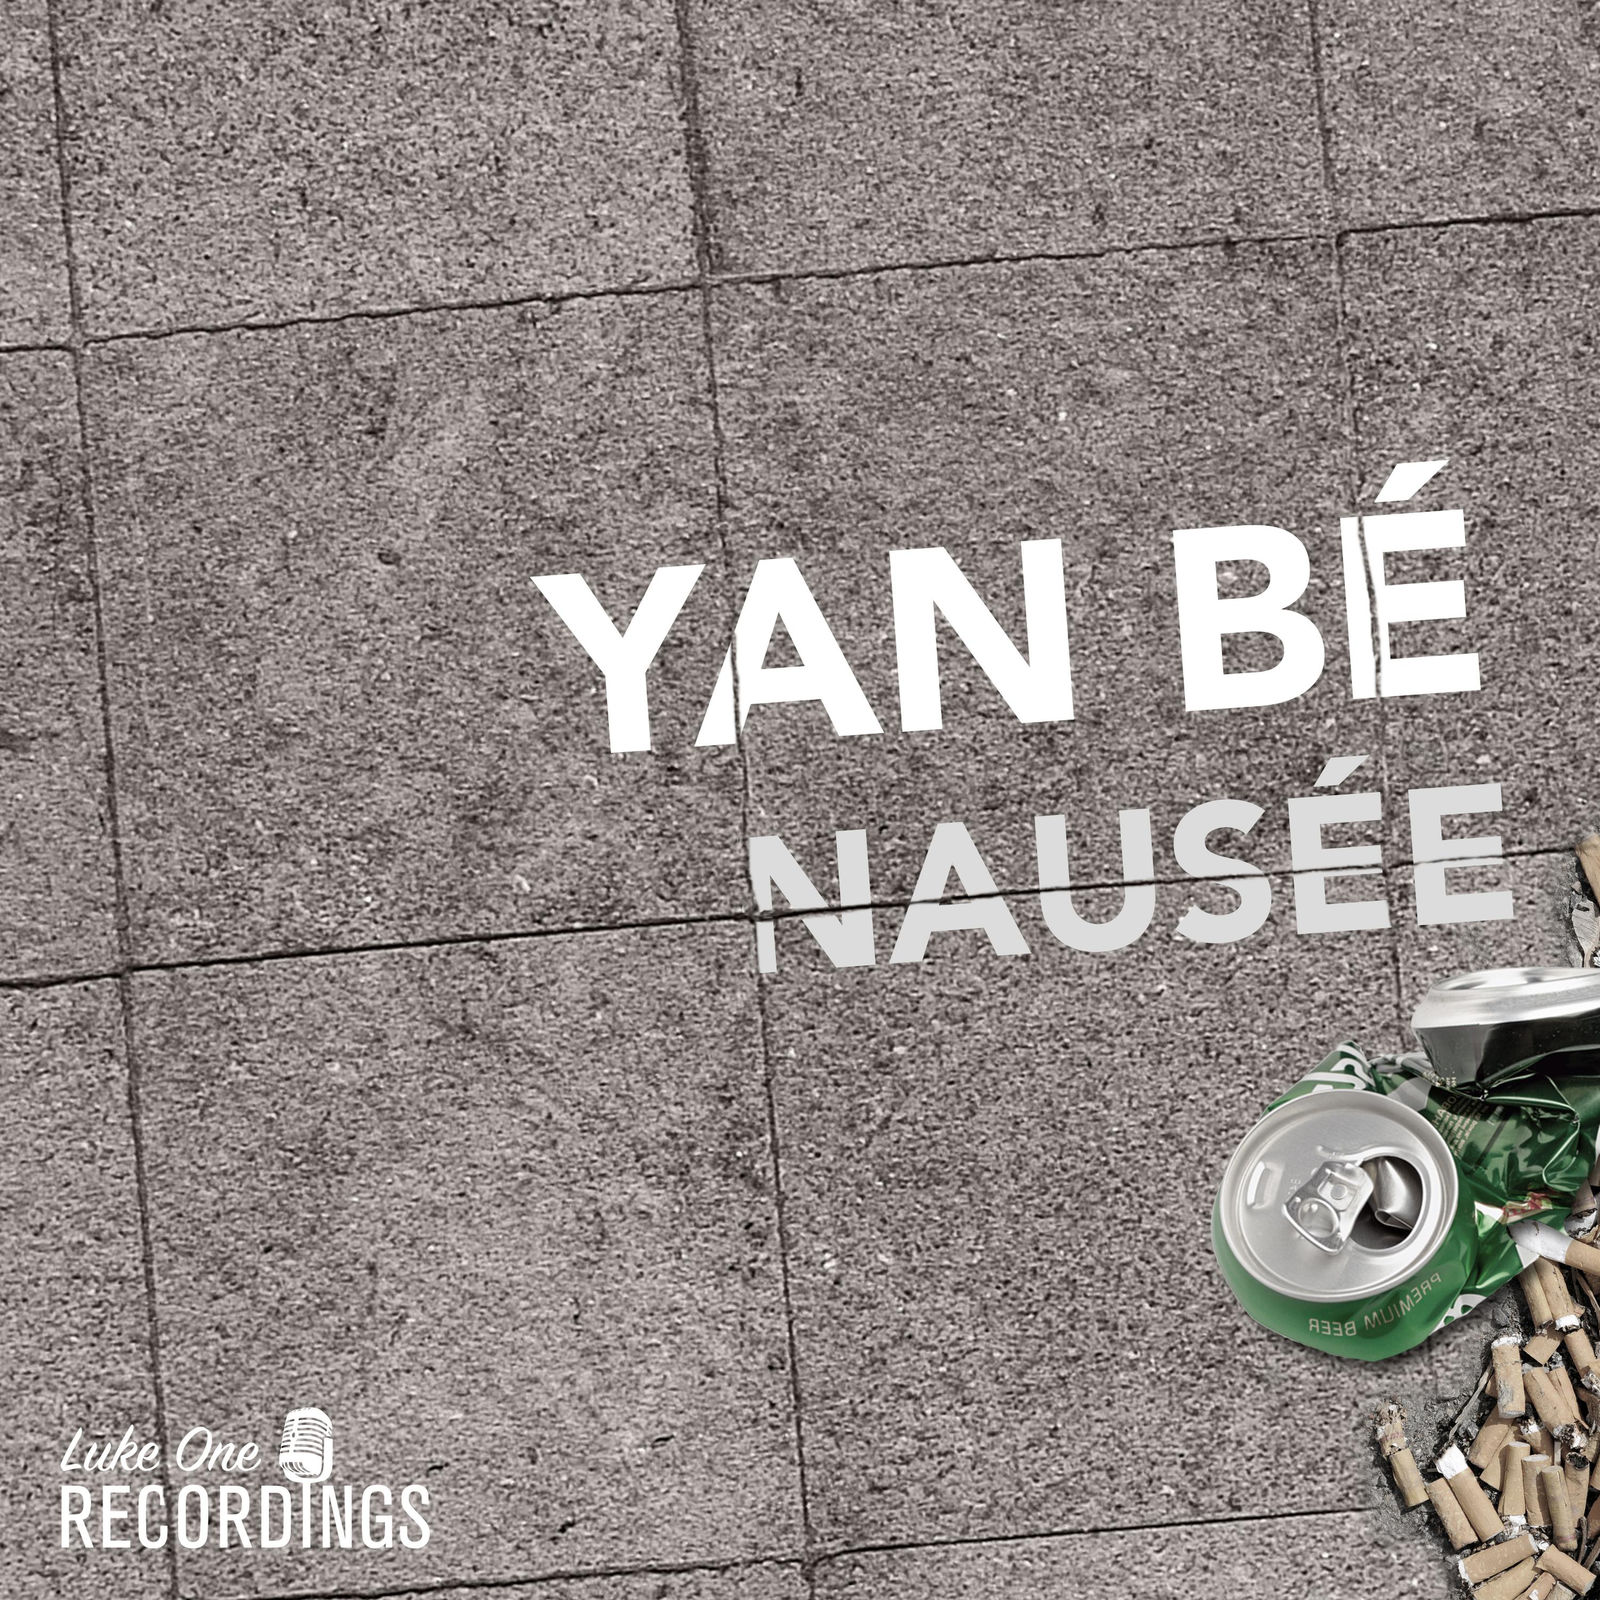 Yan Bé (Nausée - Single)